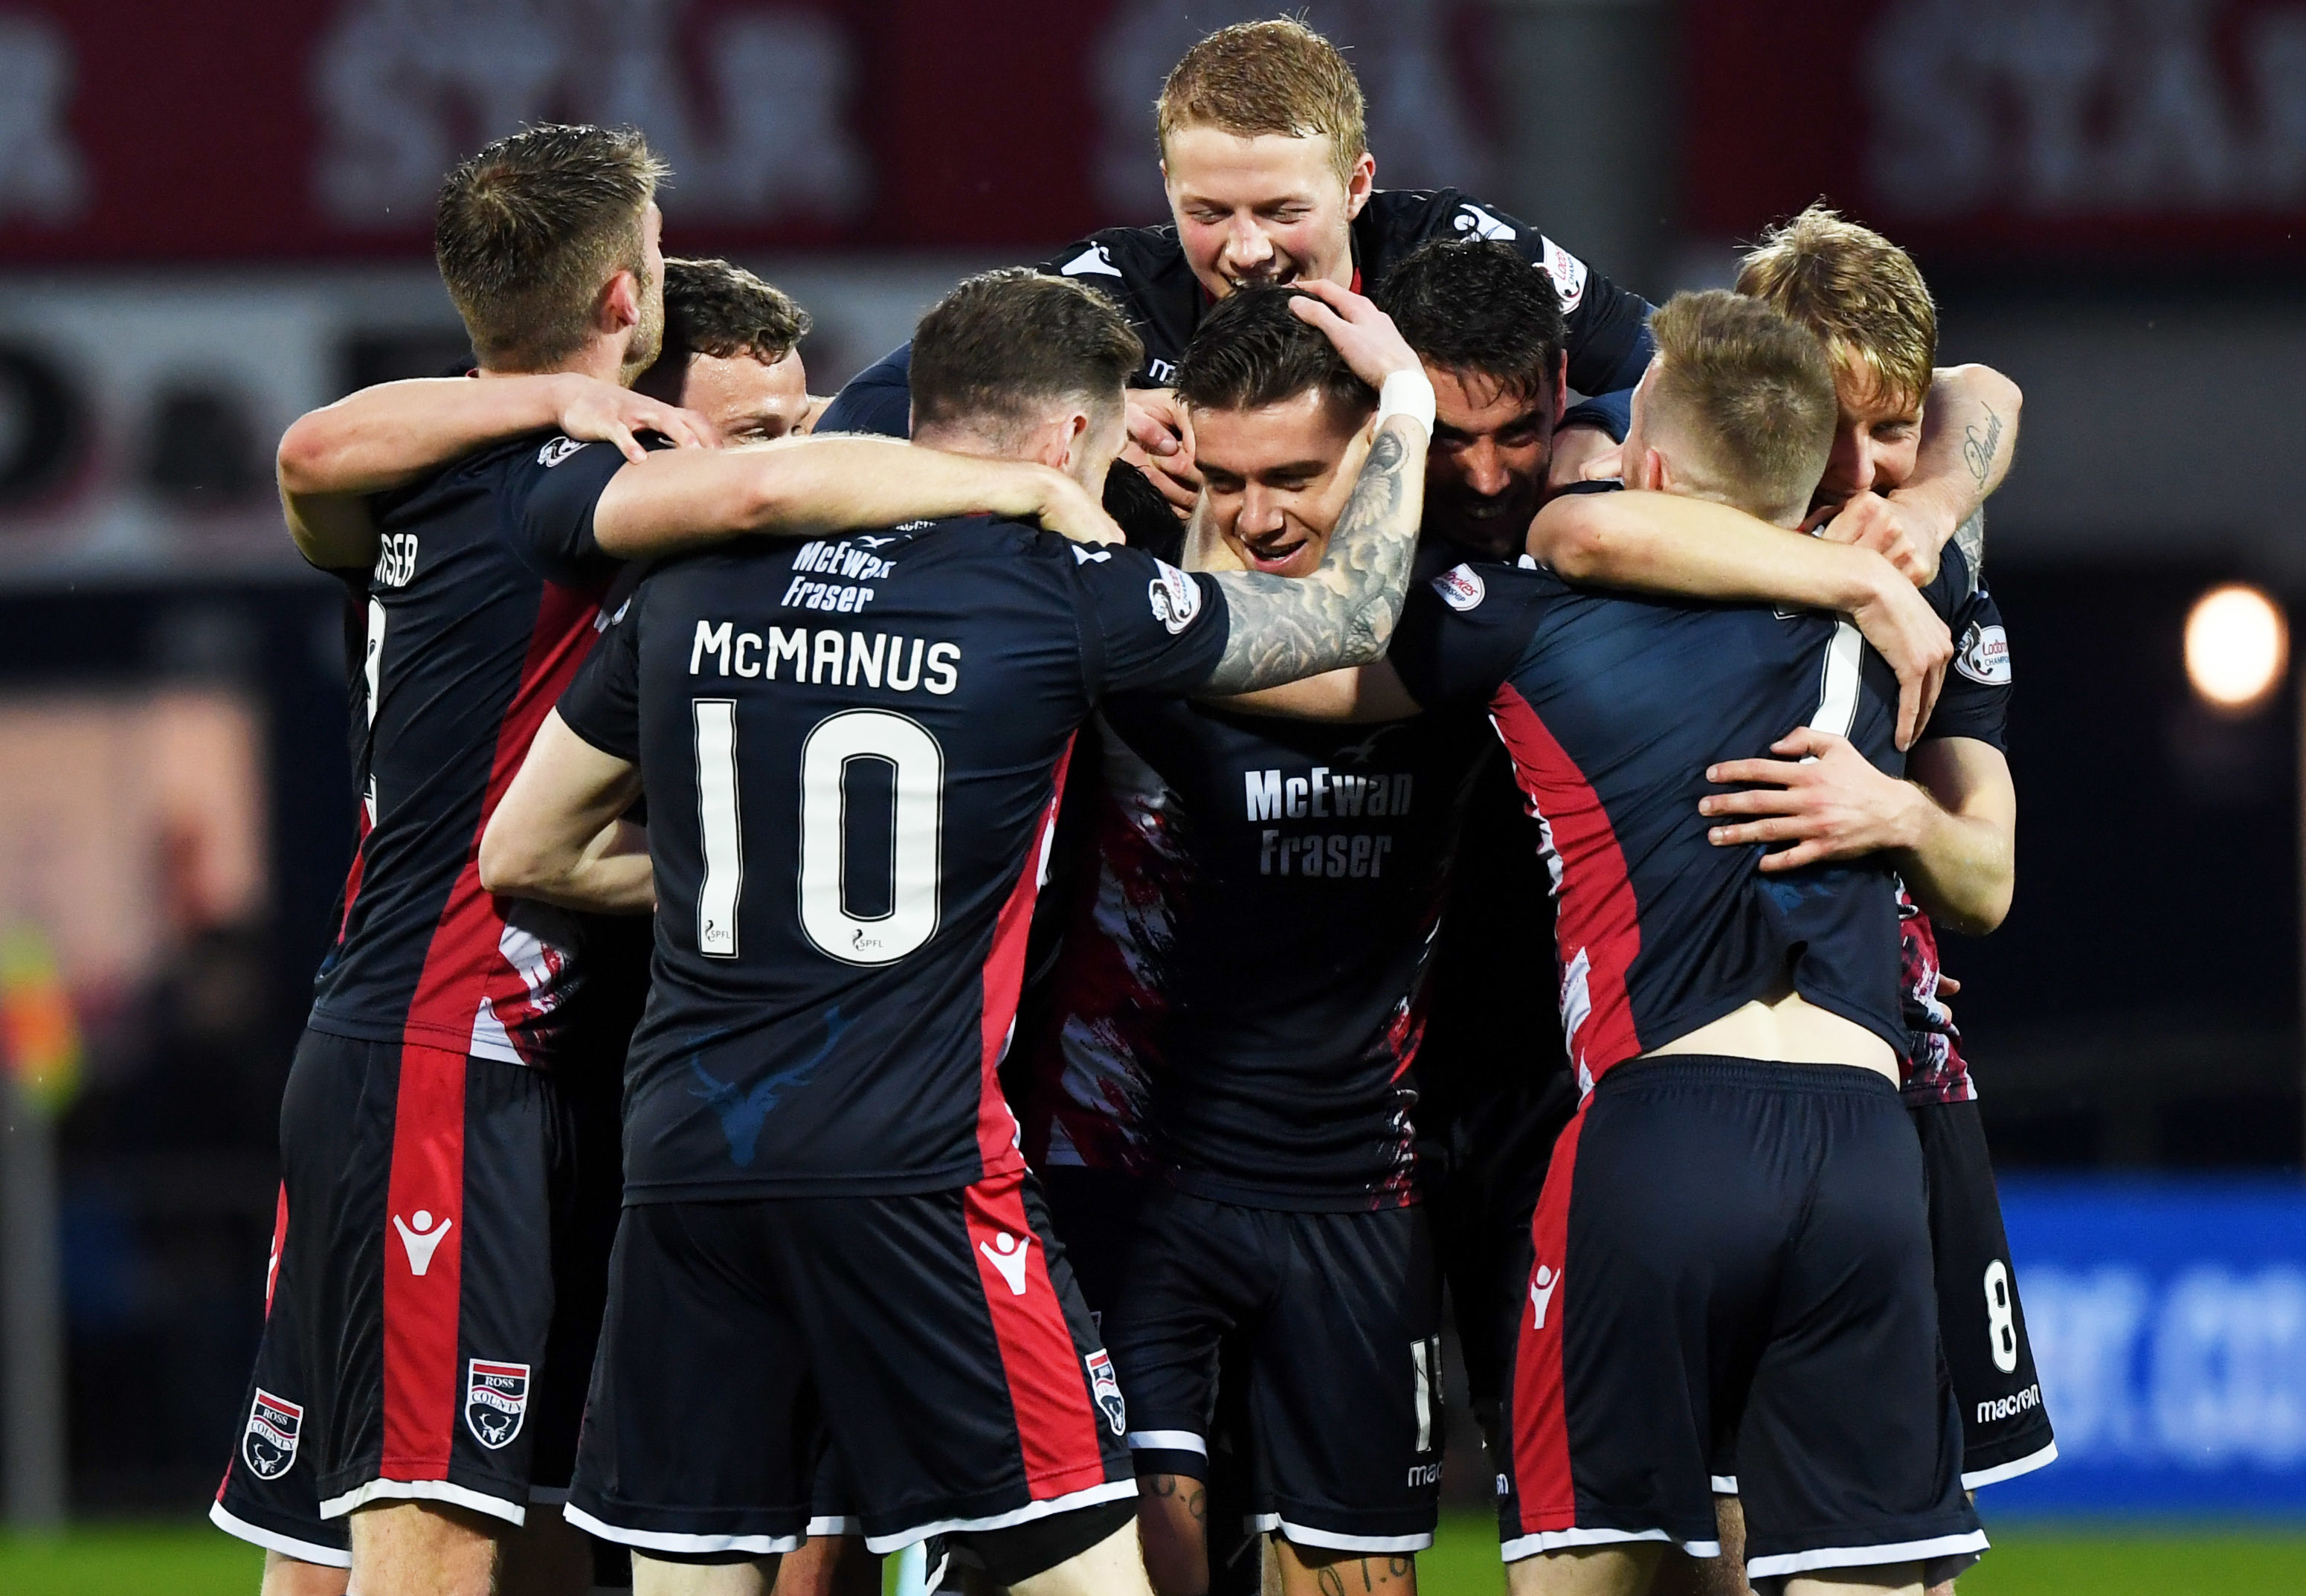 Ross County's Josh Mullin (centre) celebrates his goal to make it 3-0 with his team-mates